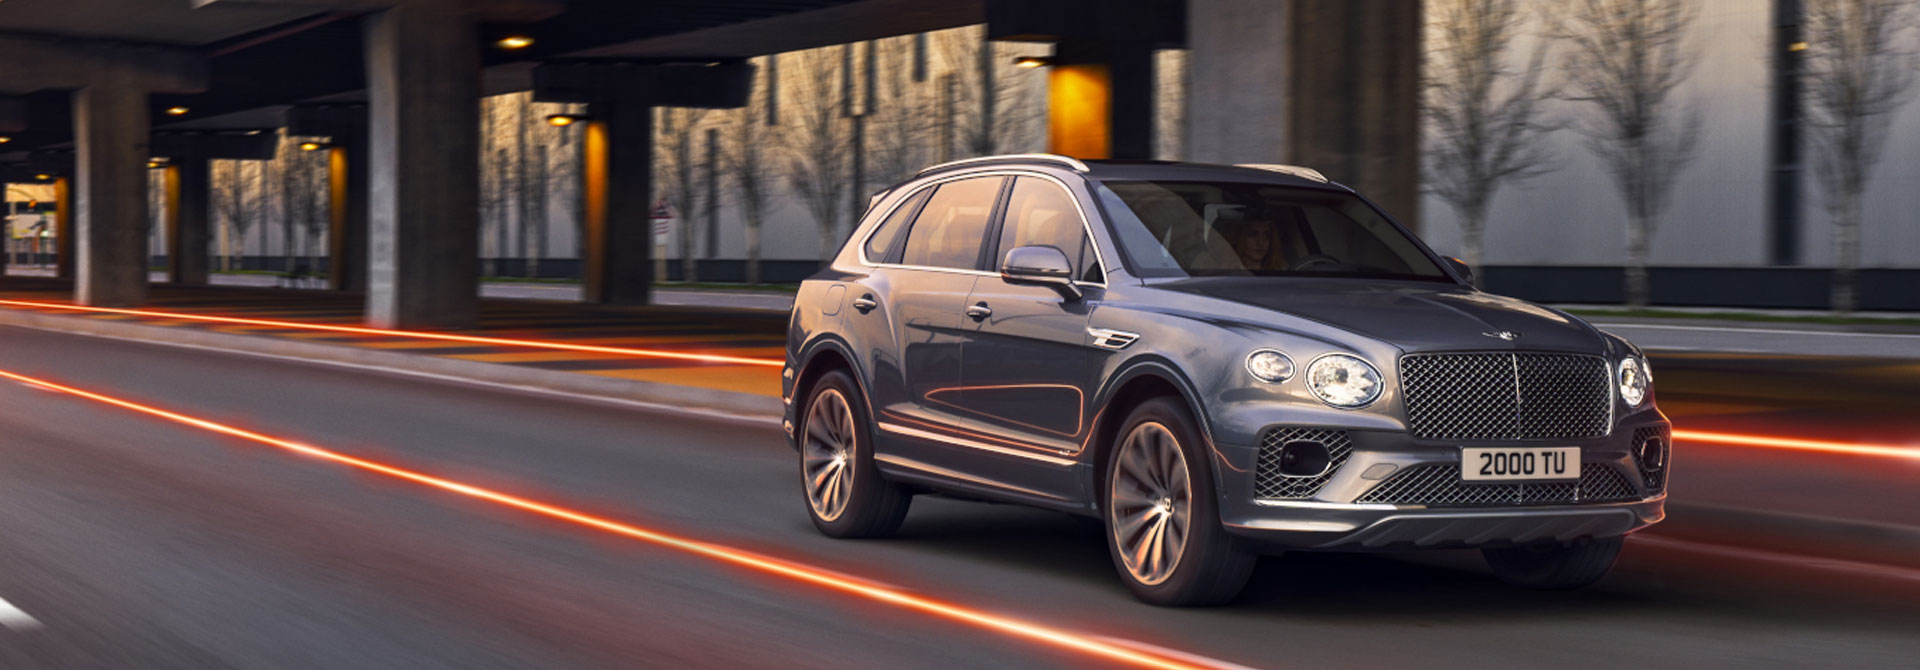 New Bentley Bentayga Range at Grange